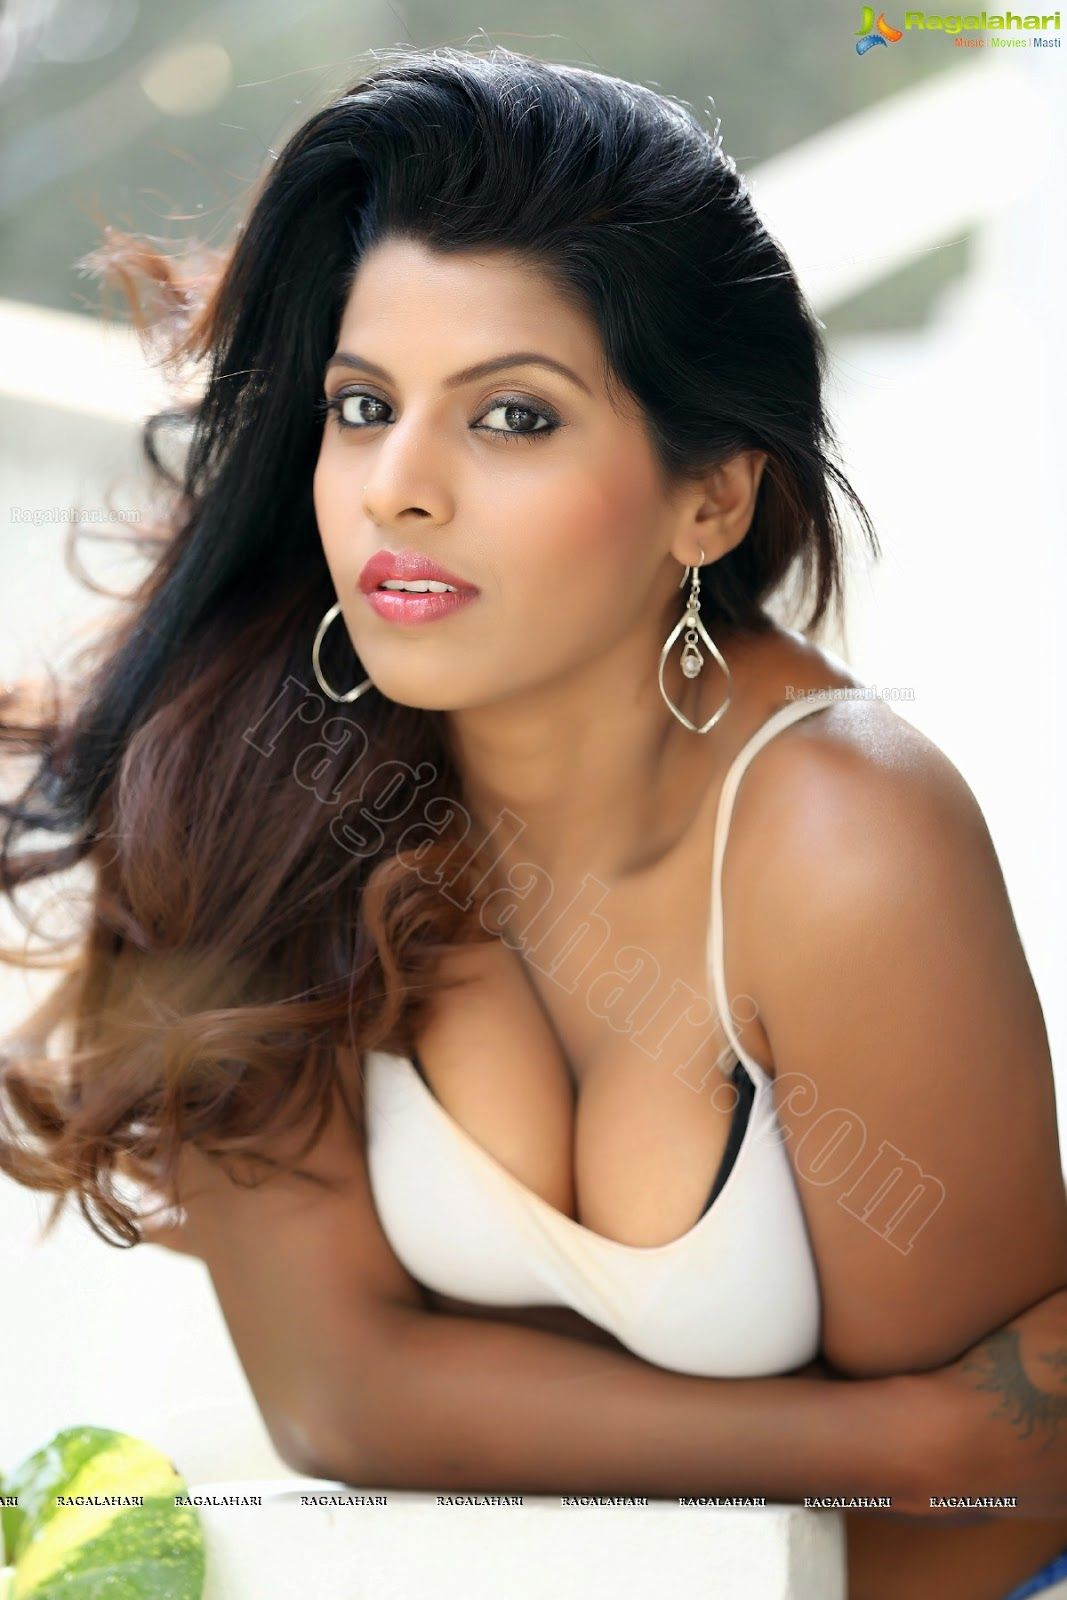 manisha-hot-nude-girl-sexy-naked-ass-flash-women